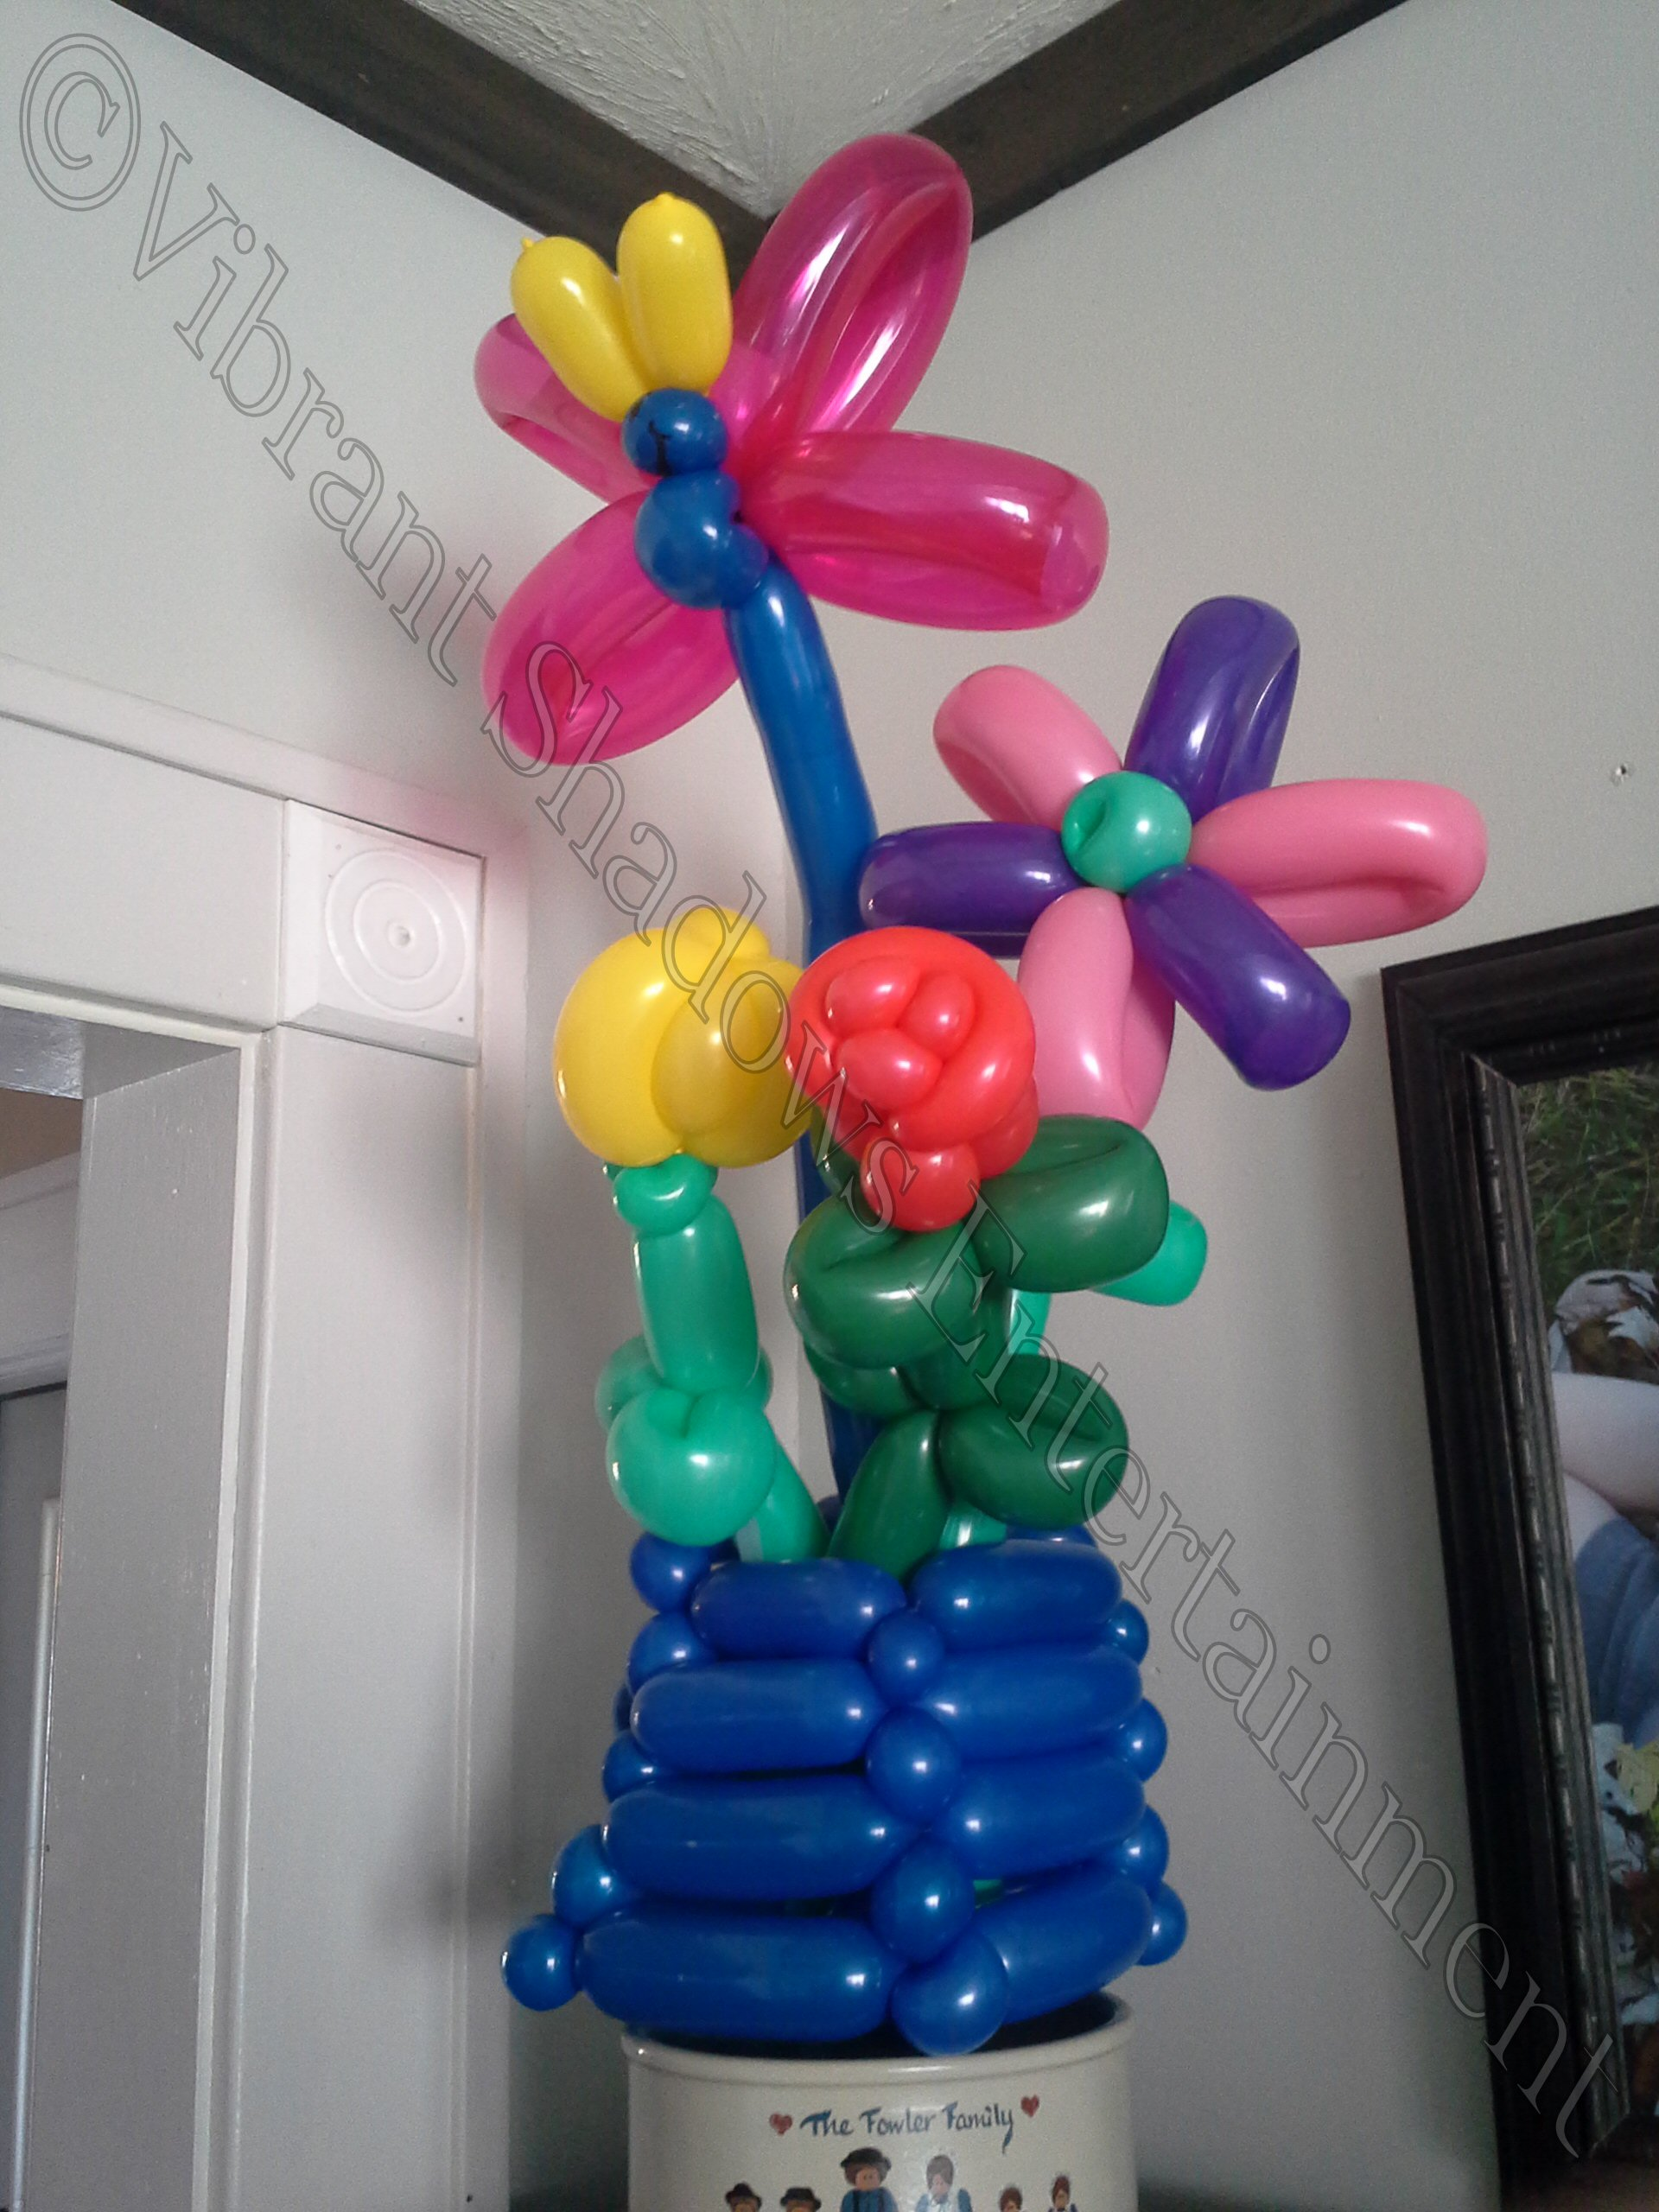 Flower baloon sculptures